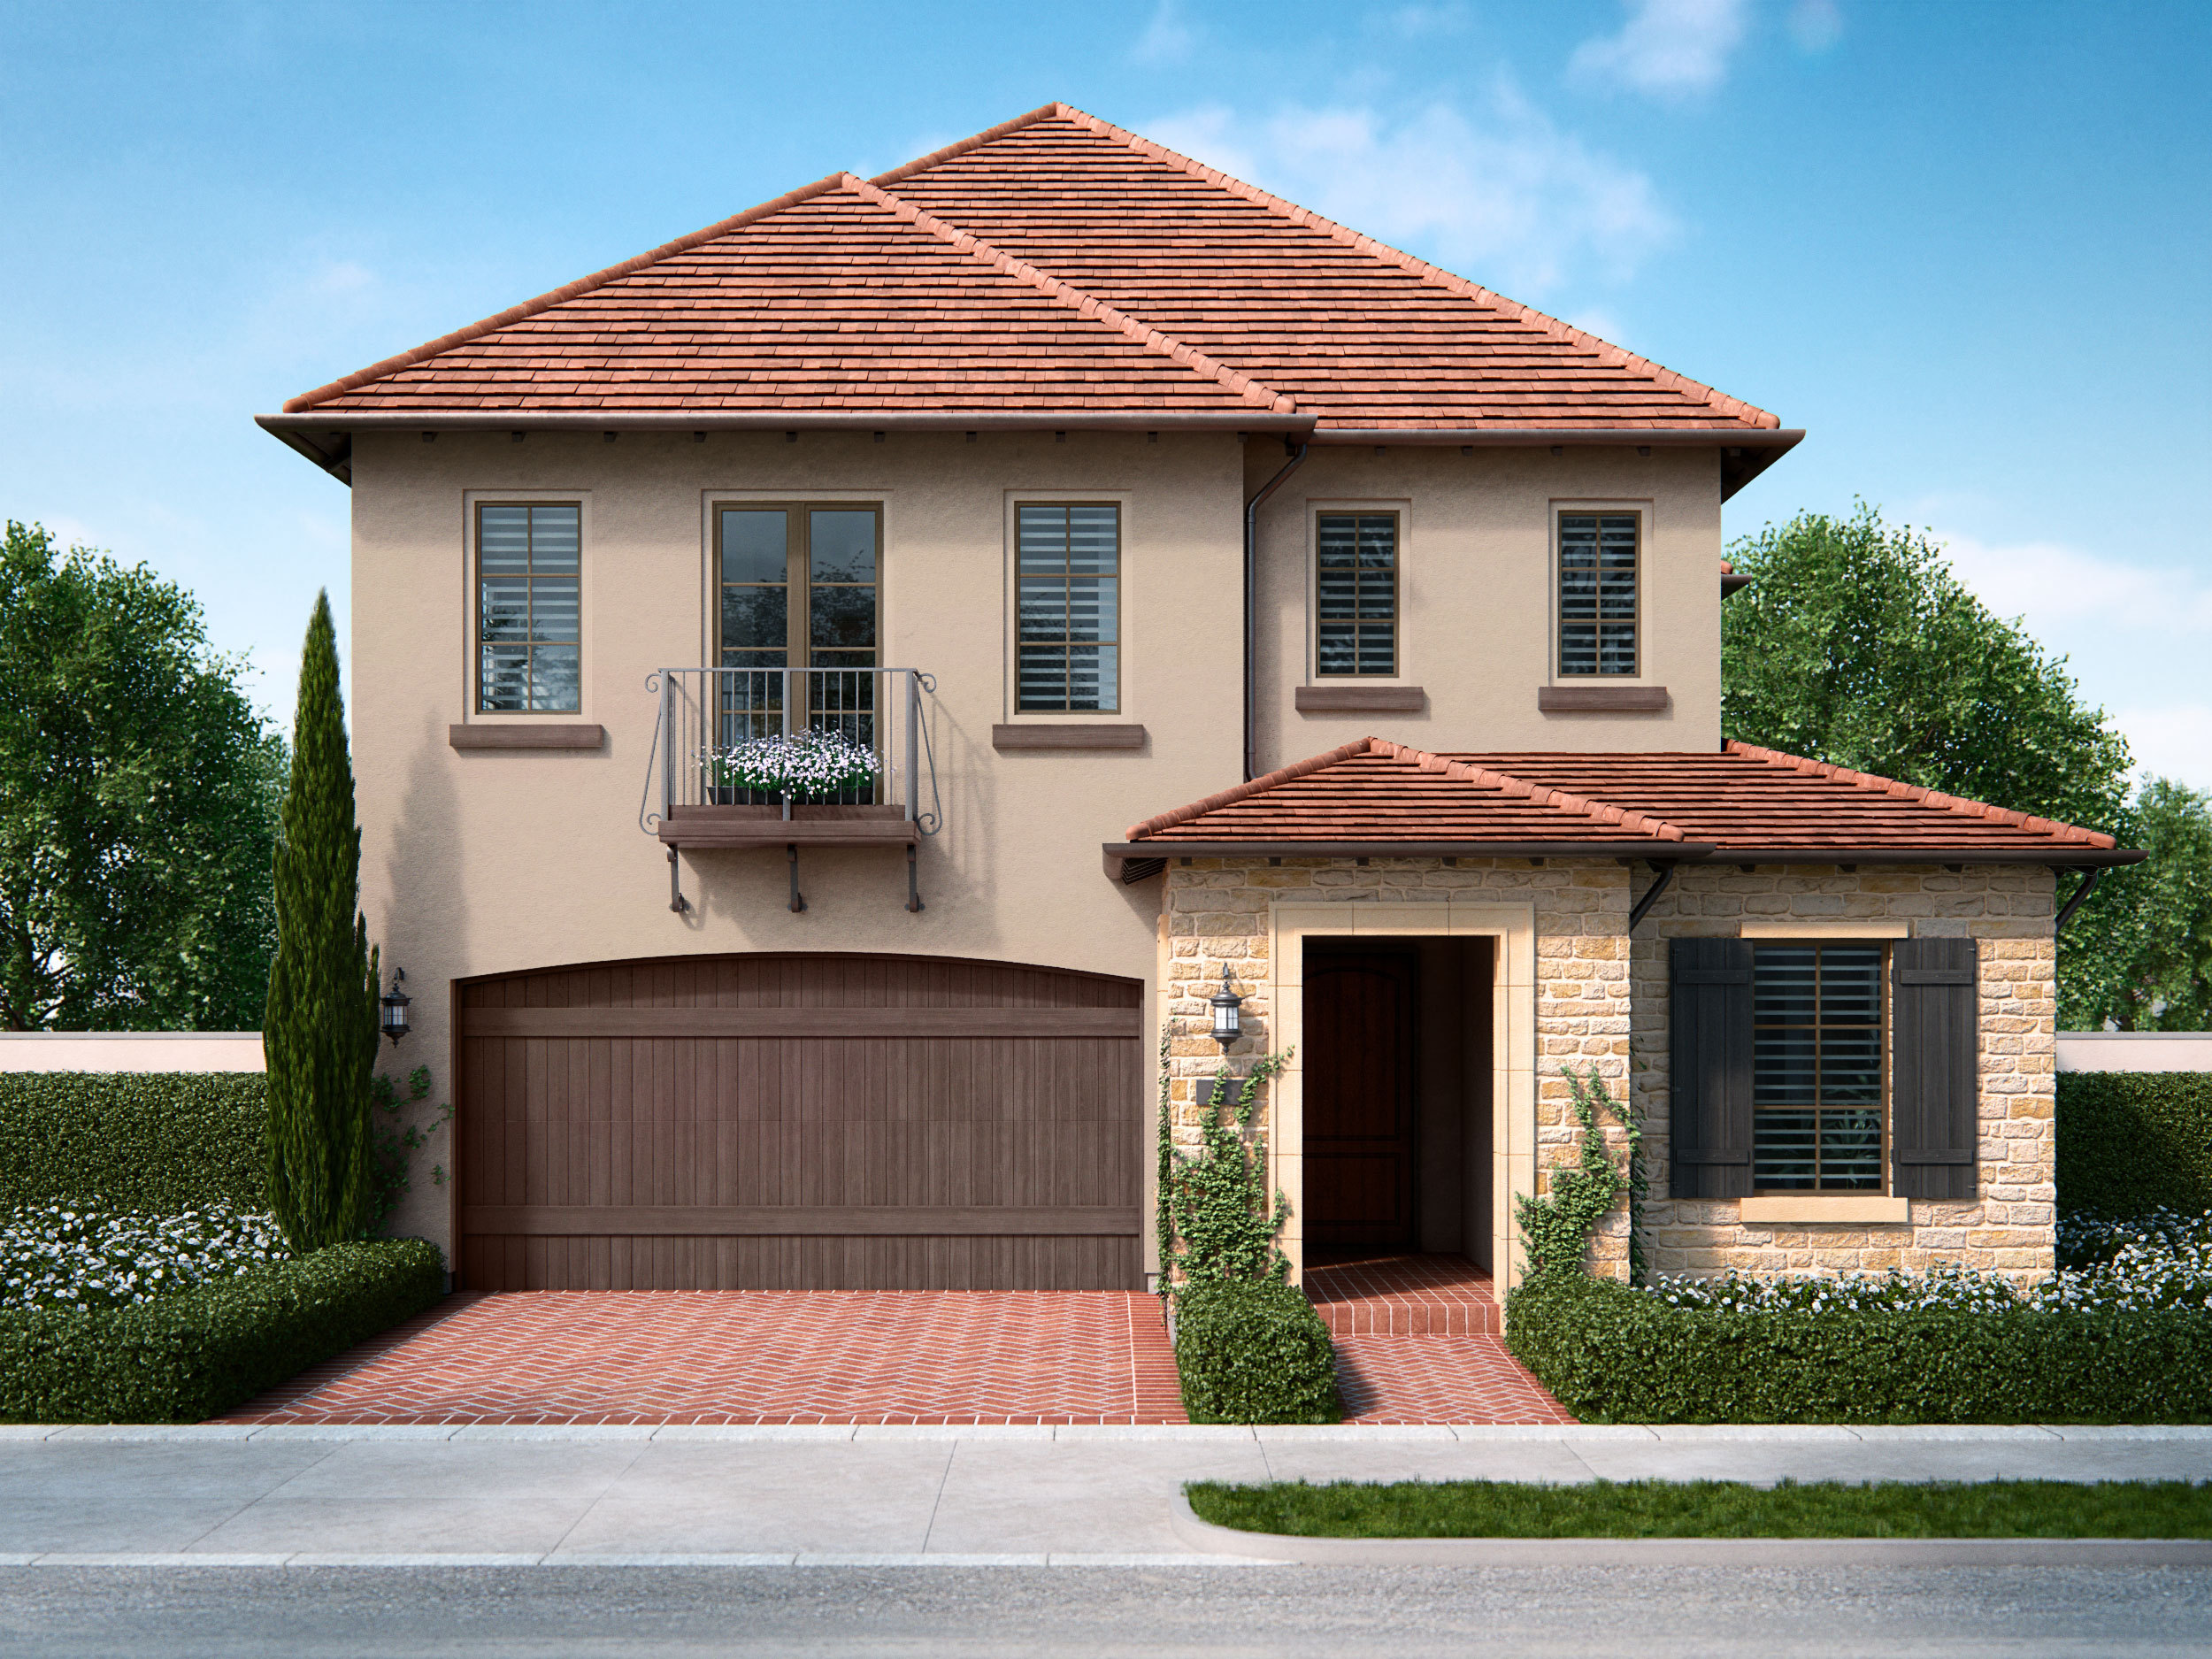 Laurel home at Cypress Village: new homes in walking distance to new award-winning schools, world-class shopping and dining, and abundant parks and trails. (Photo: Business Wire)